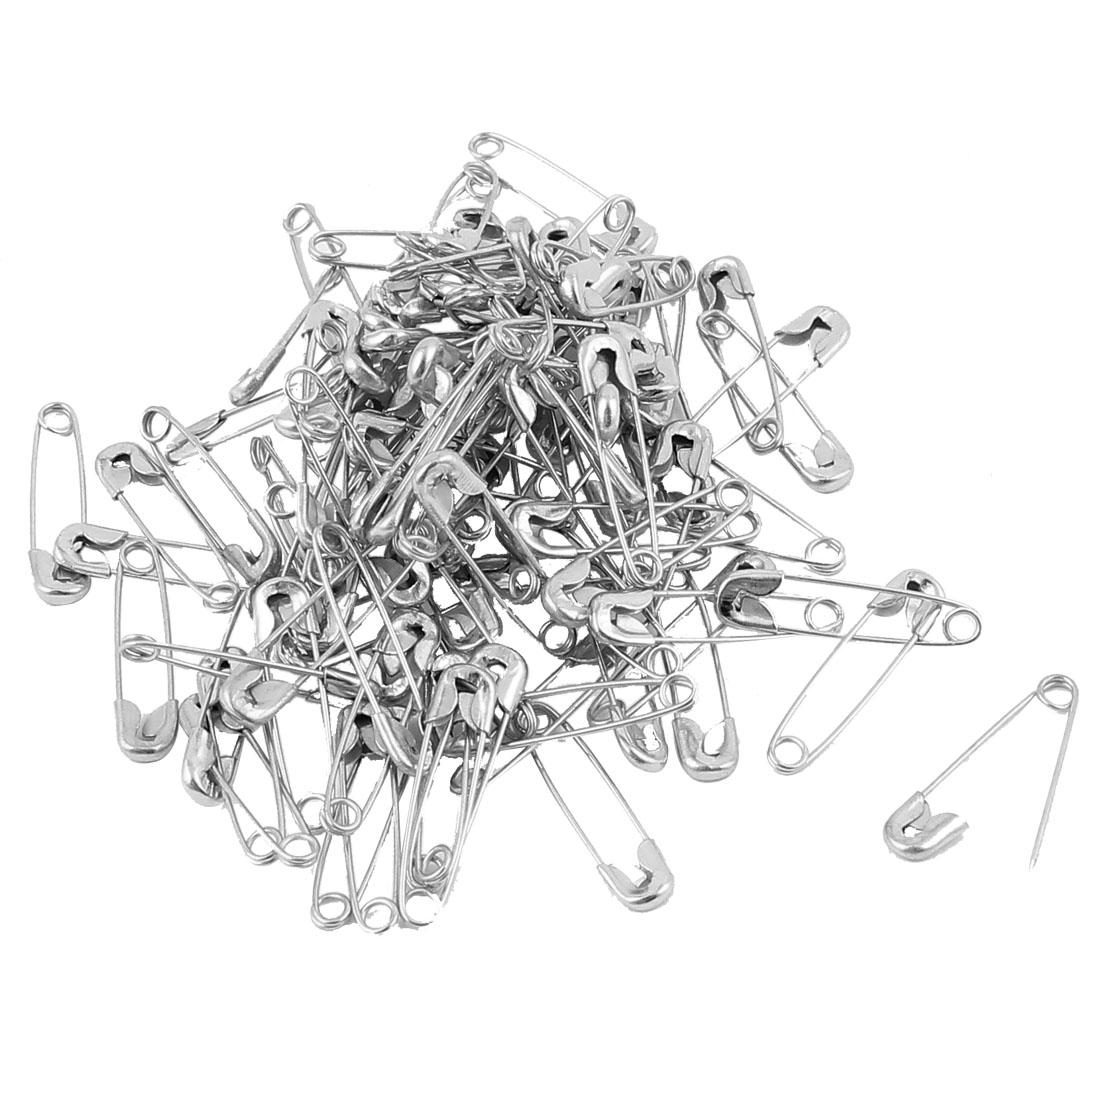 100 Pcs Metal Clothing Trimming Fastening Safety Pins 20mm x 5mm Silver Tone